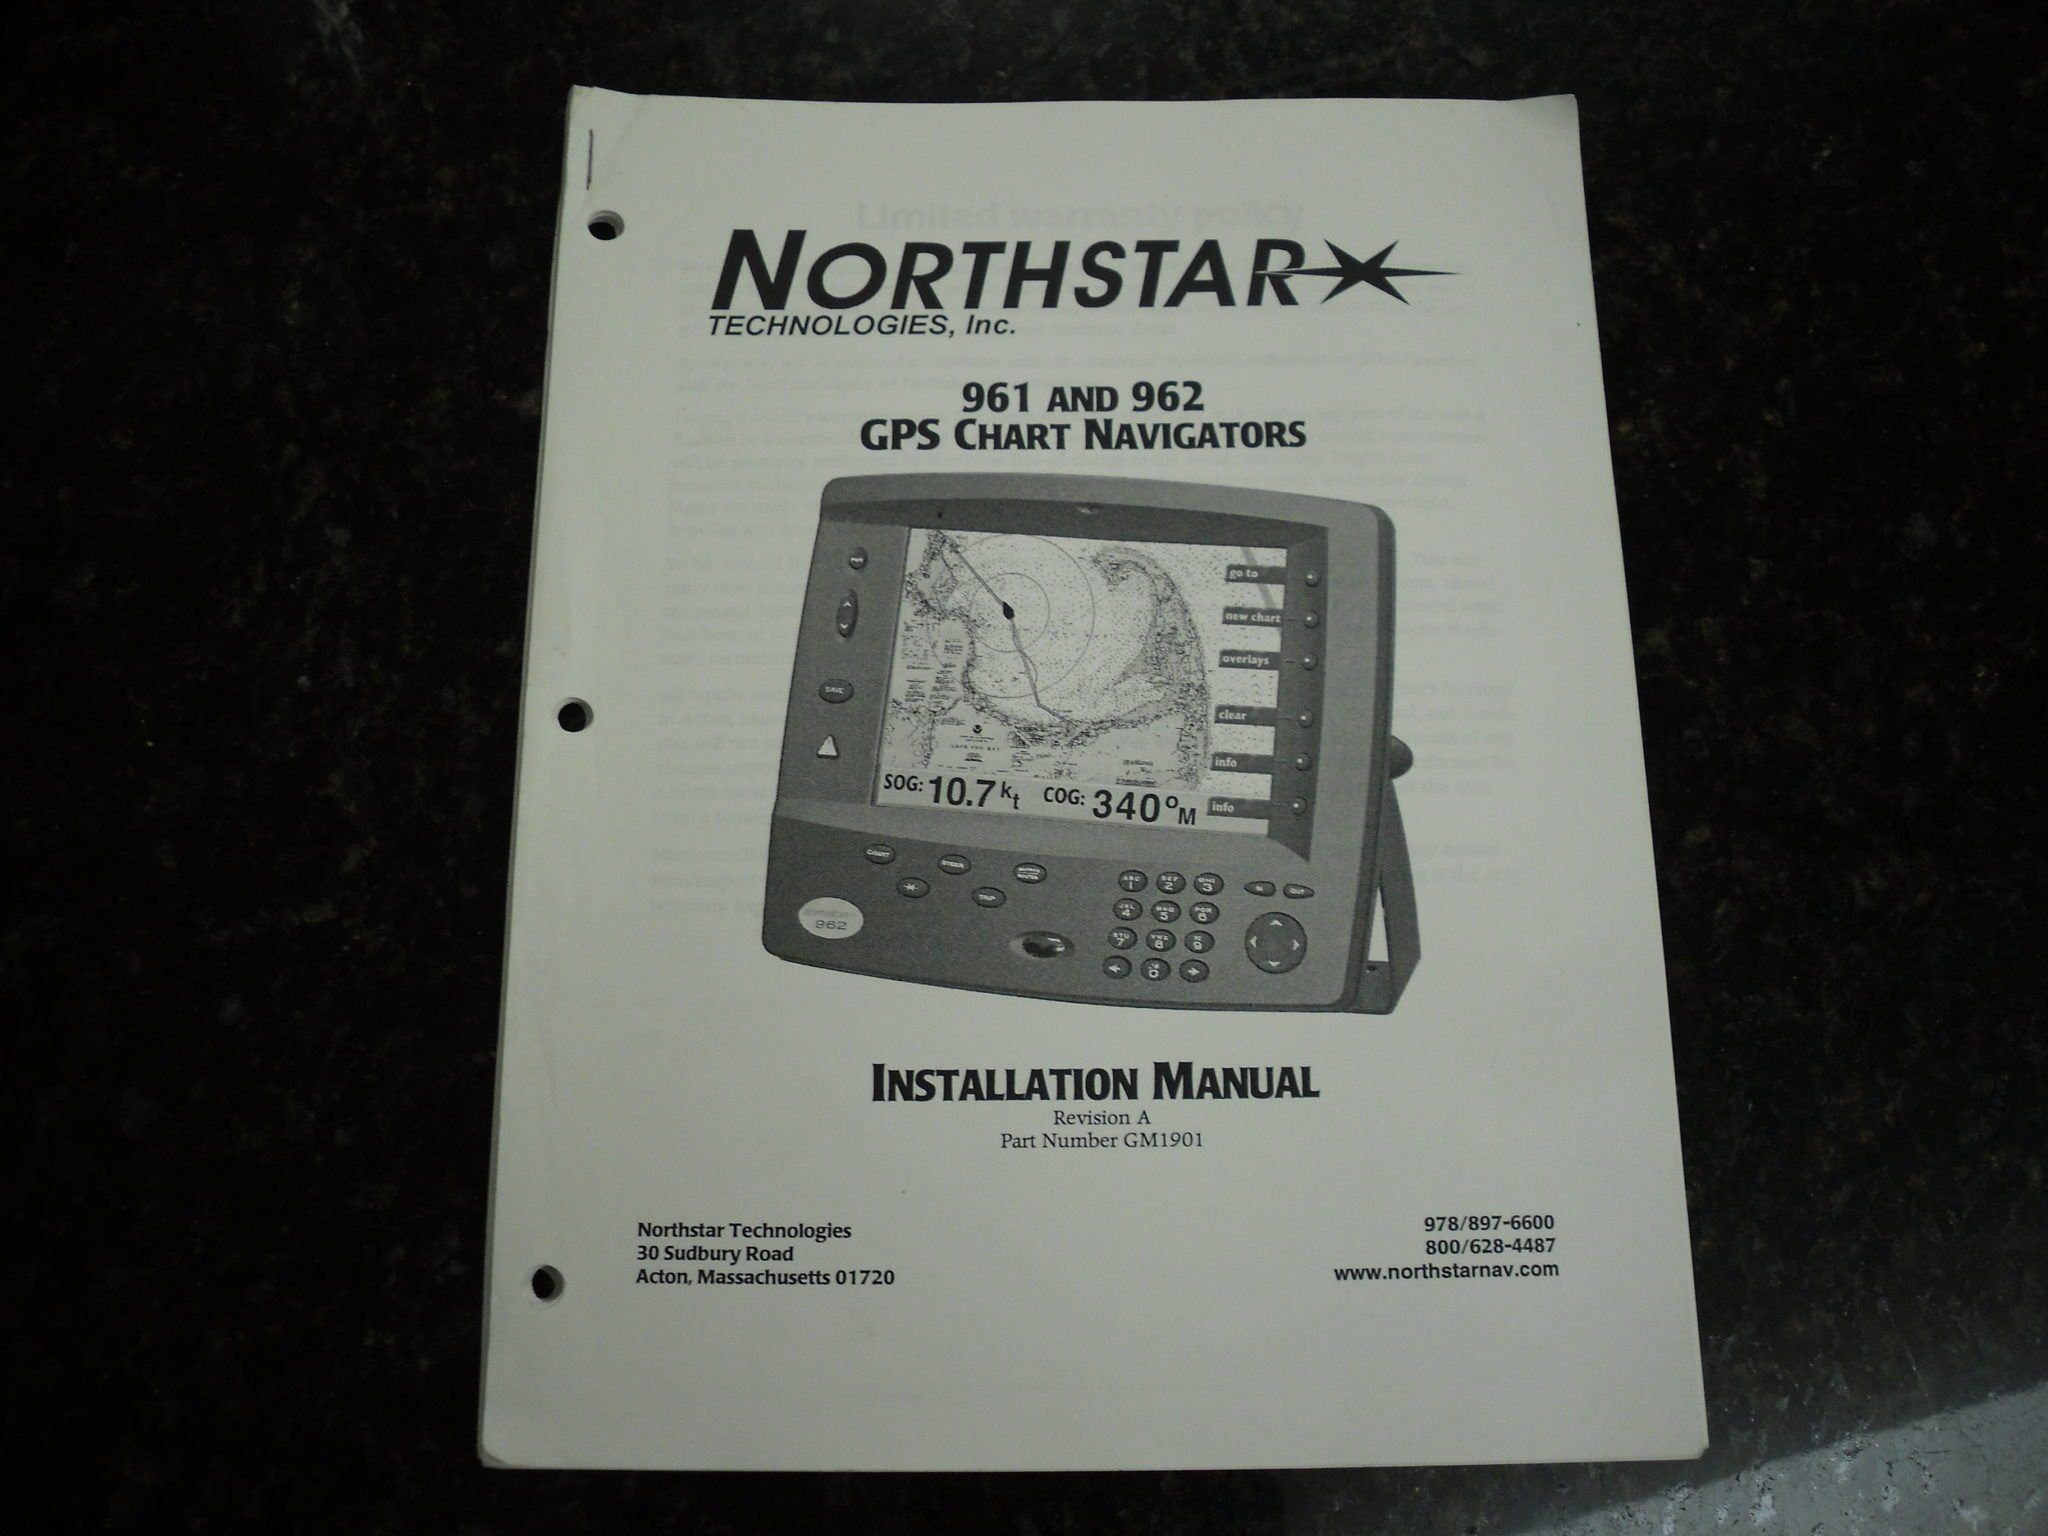 Garmin 196 Gps Wiring Diagram Trusted Diagrams Nmea 0183 Northstar 961 962 Chart Navigators Installation Manual Rev A